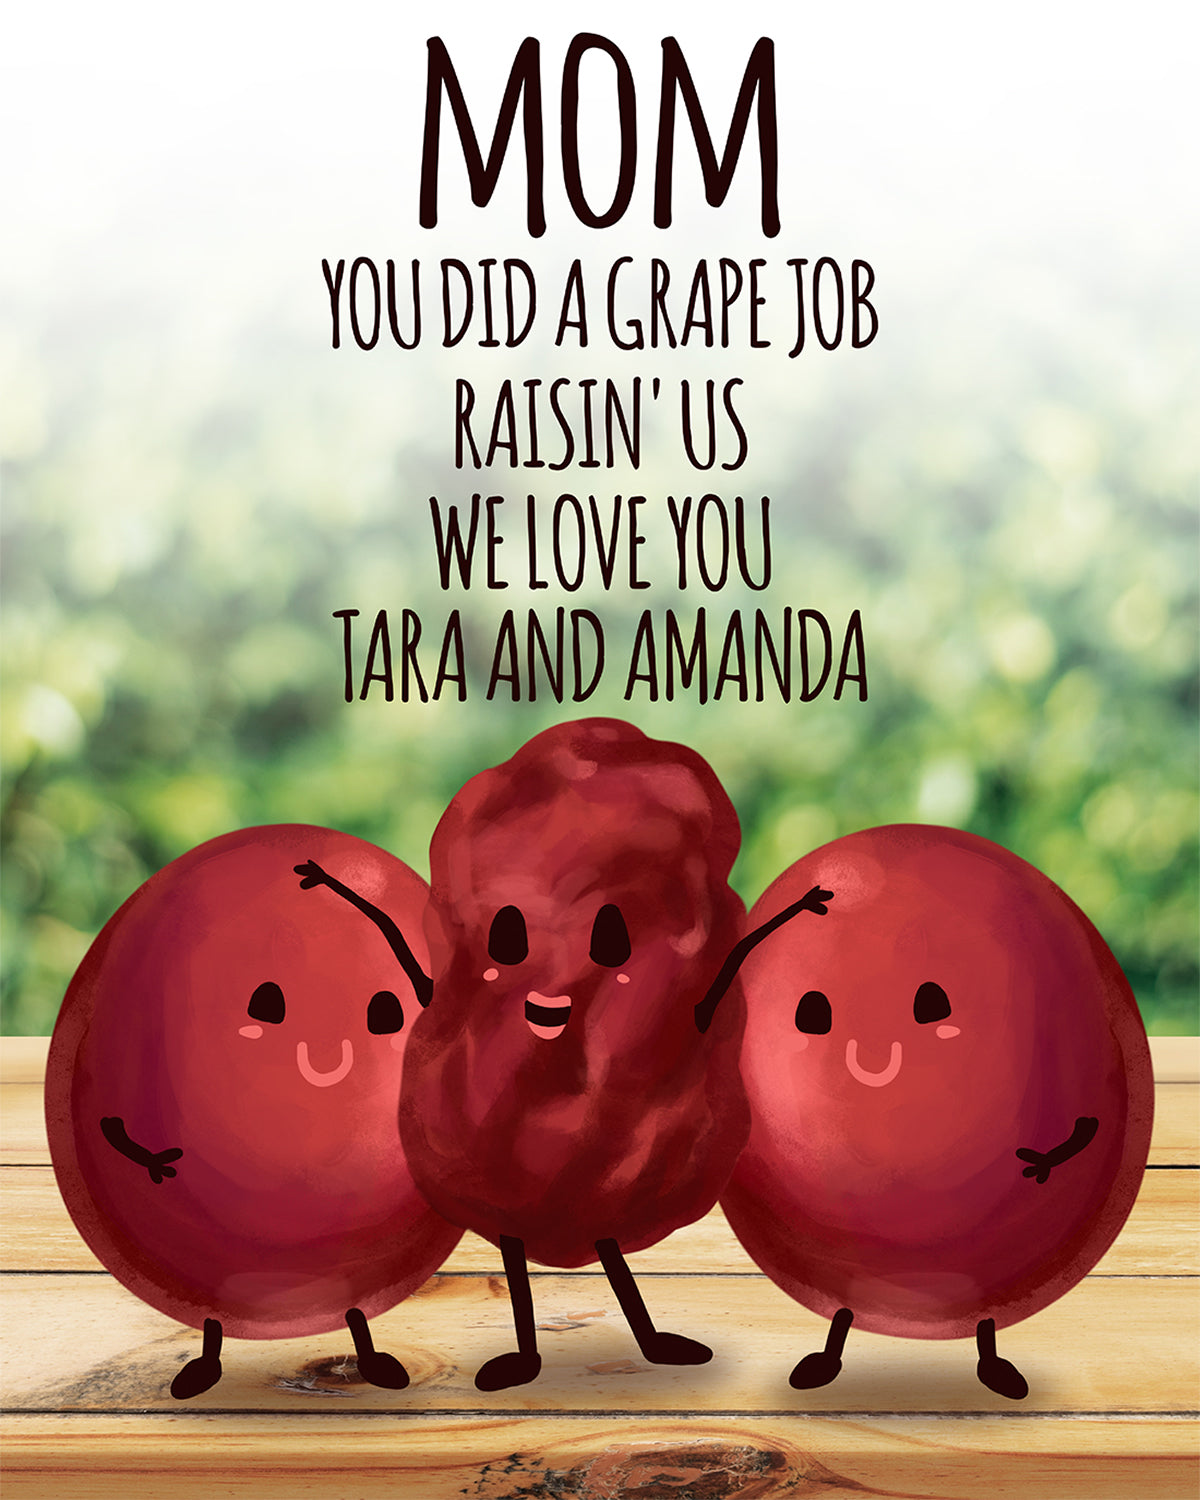 Mom You Did A Grape Job Raisin' Us - We Love You, (Your Name/s) Customizable Wall Decor Art - Print, Poster & Canvas Sizes - Gift for Mom From Children